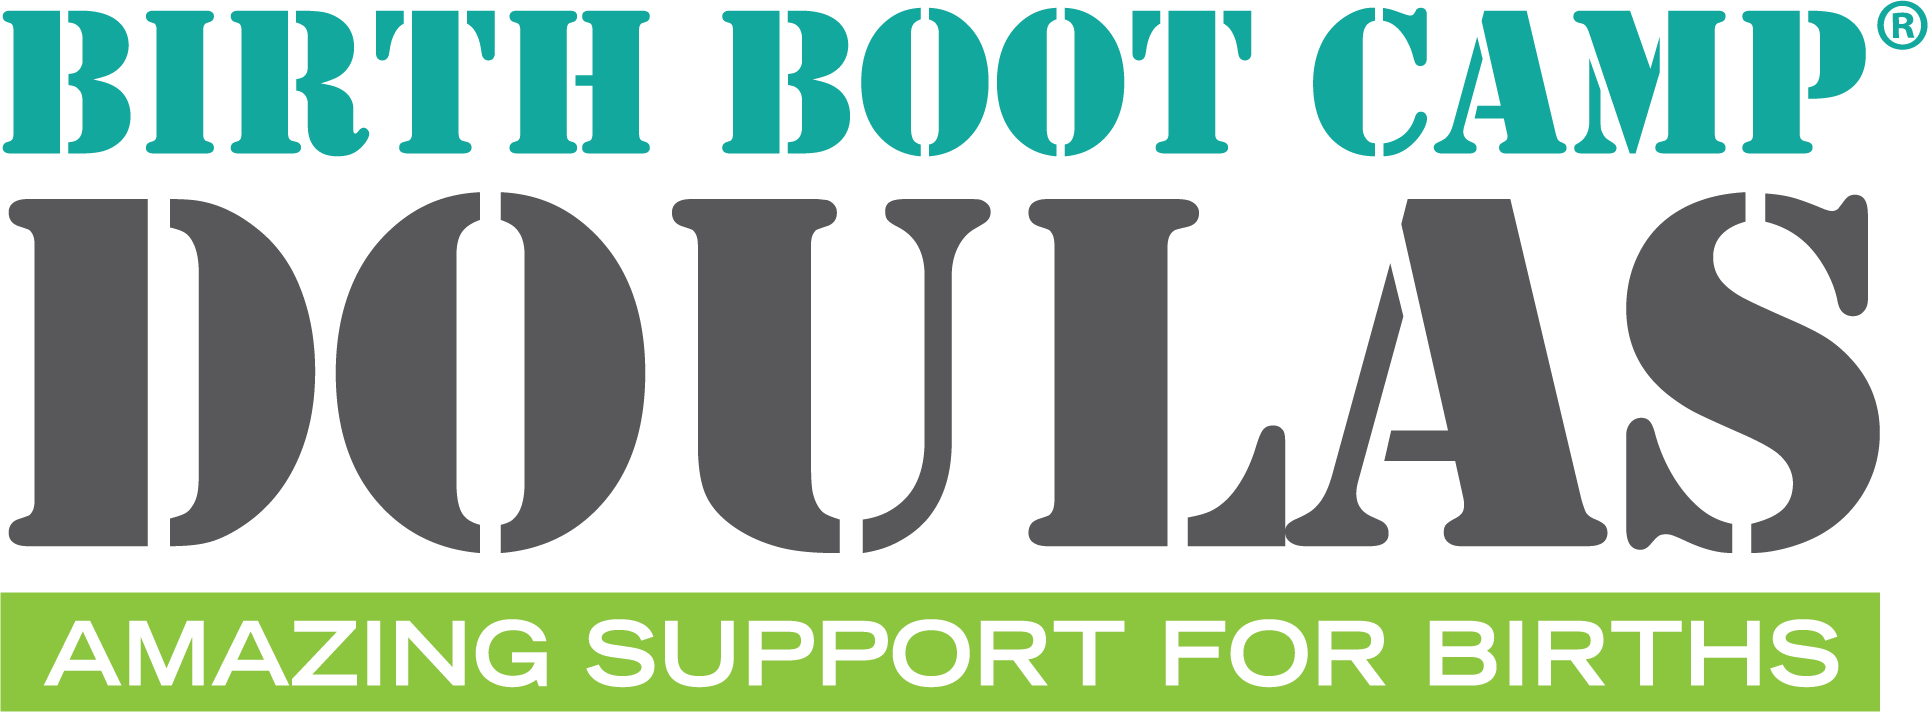 Birth Boot Camp Doulas